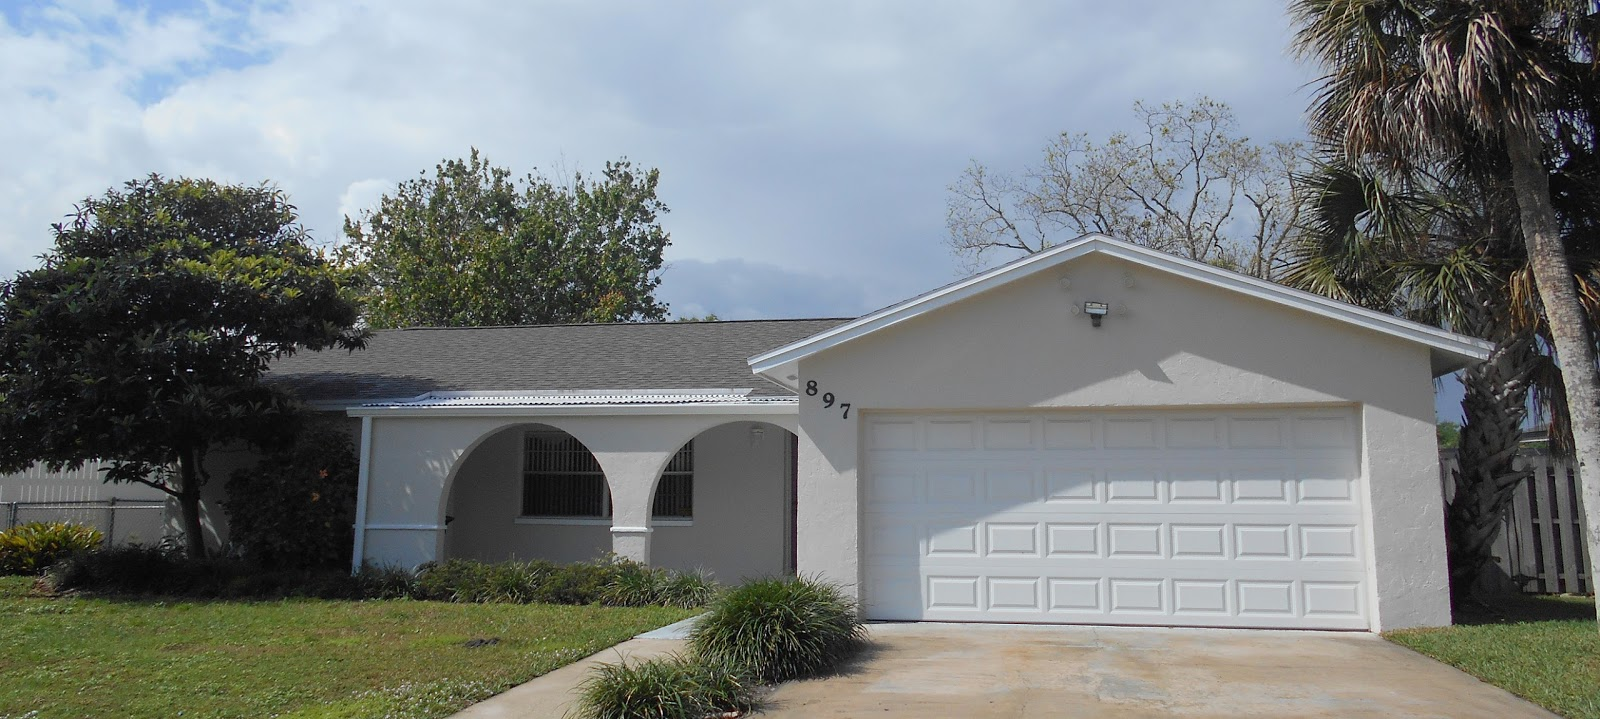 Moving to brevard county florida home for sale for 6 car garage homes for sale